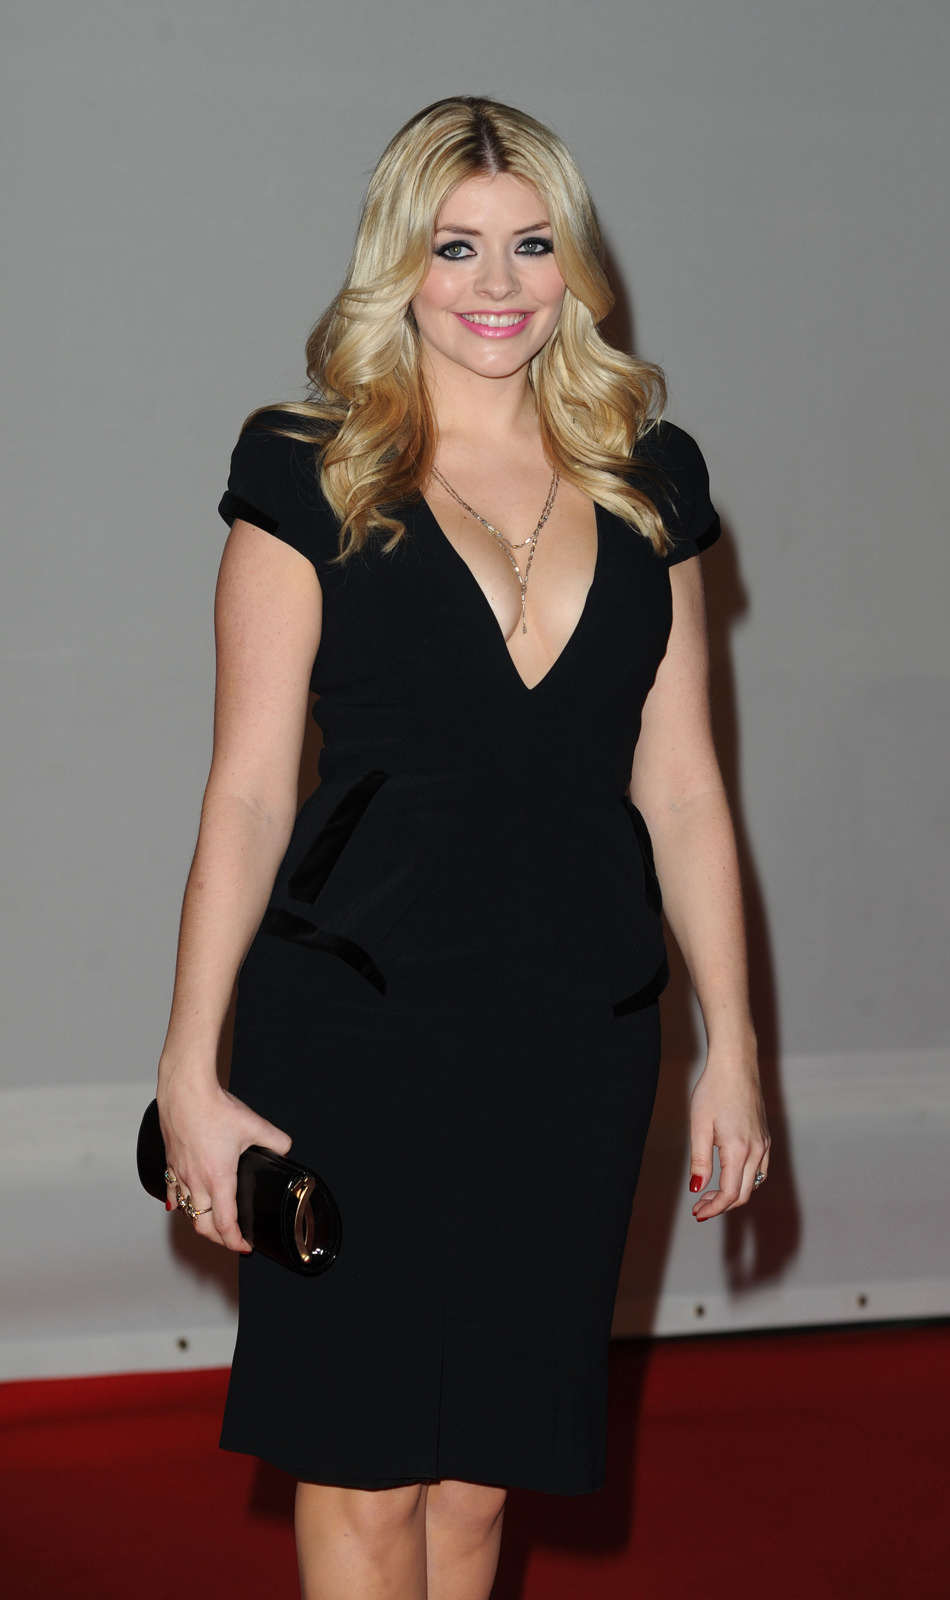 Holly Willoughby Photo Gallery